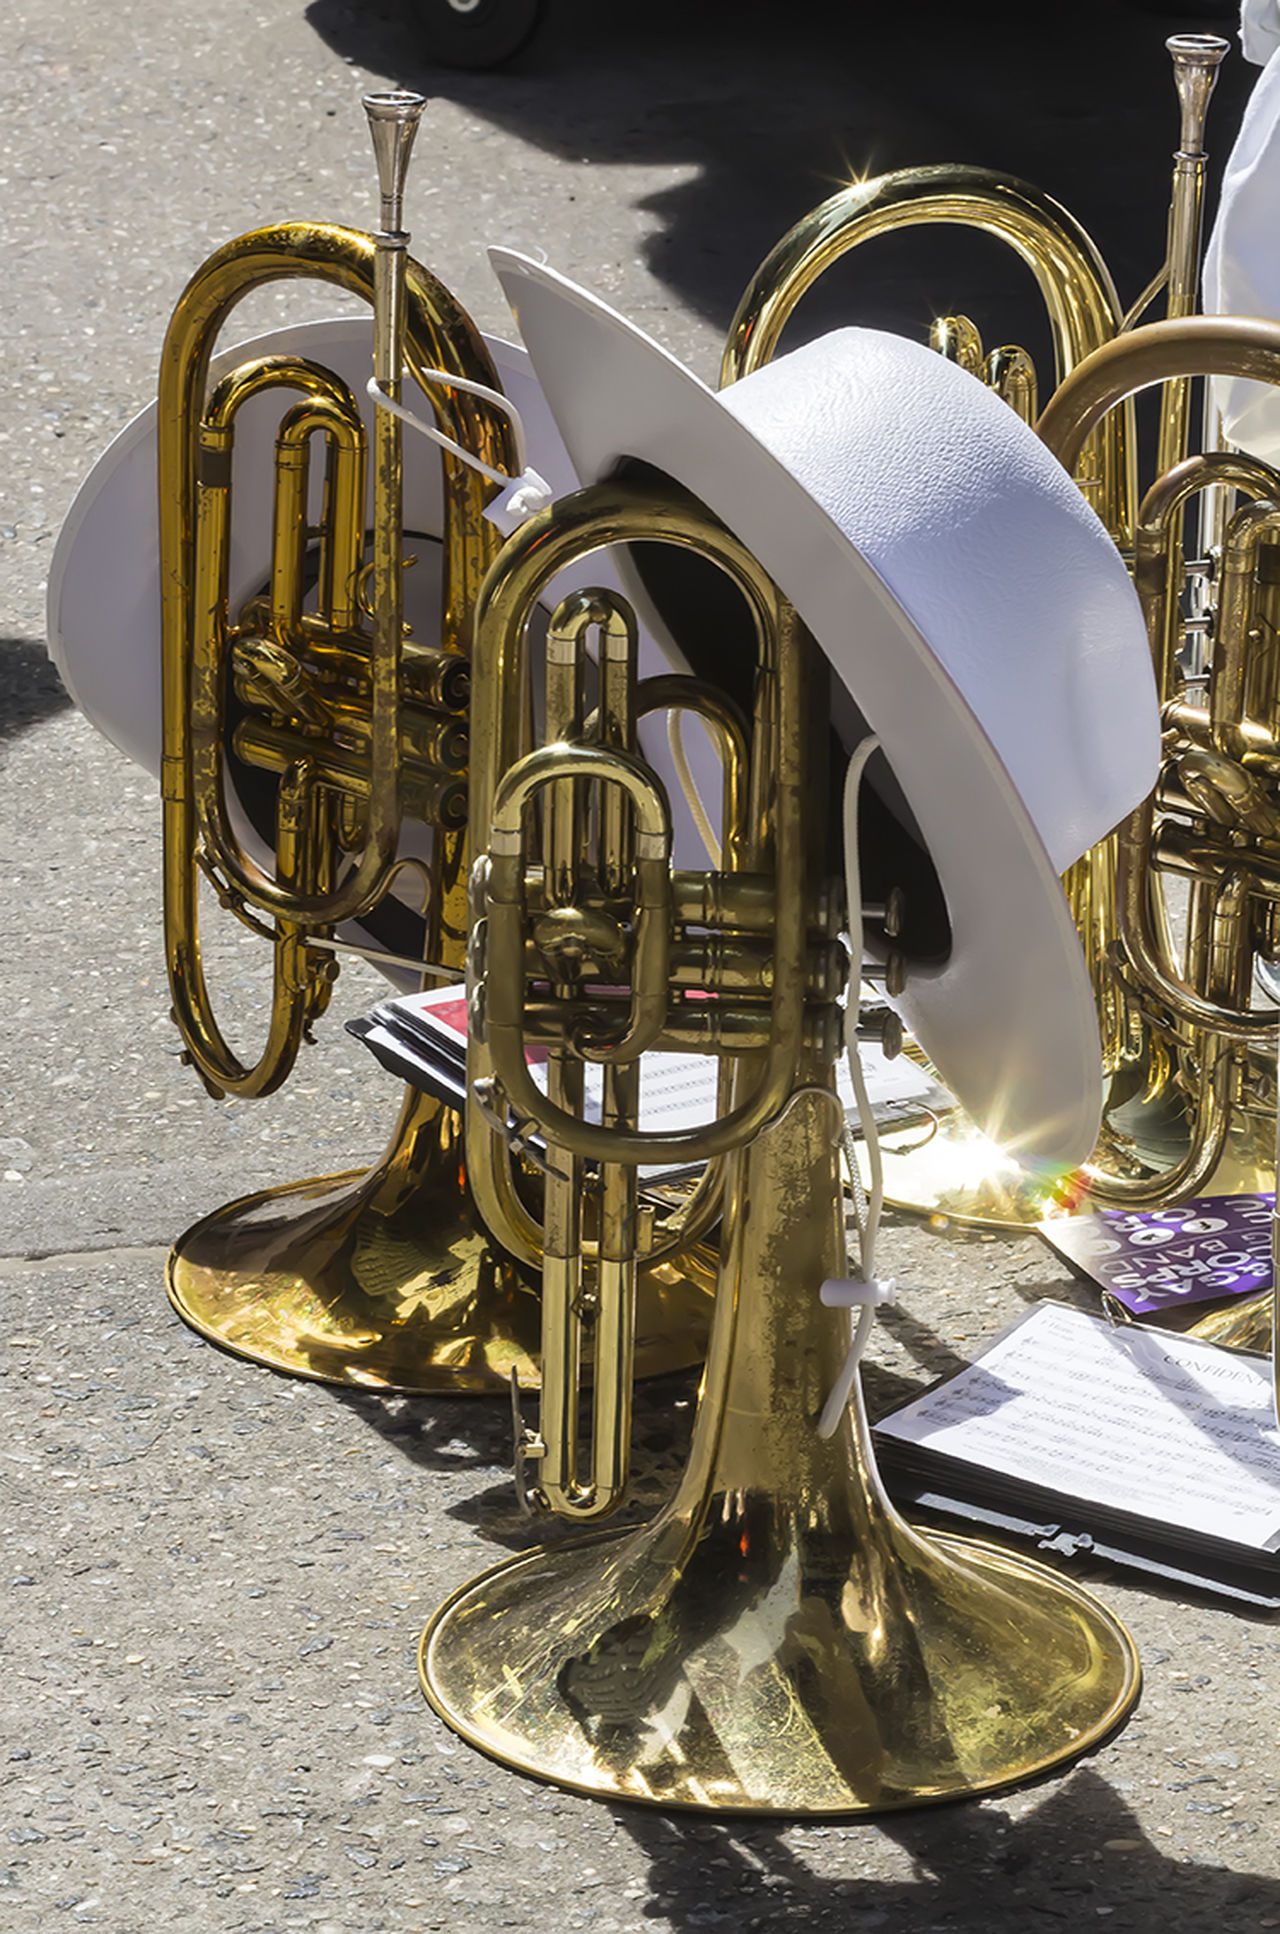 Gay Pride Parade NYC 2016 Brass Instruments Gay Boy Gay Pride Parade NYC 2016 Marching Band Instruments Musical Instruments